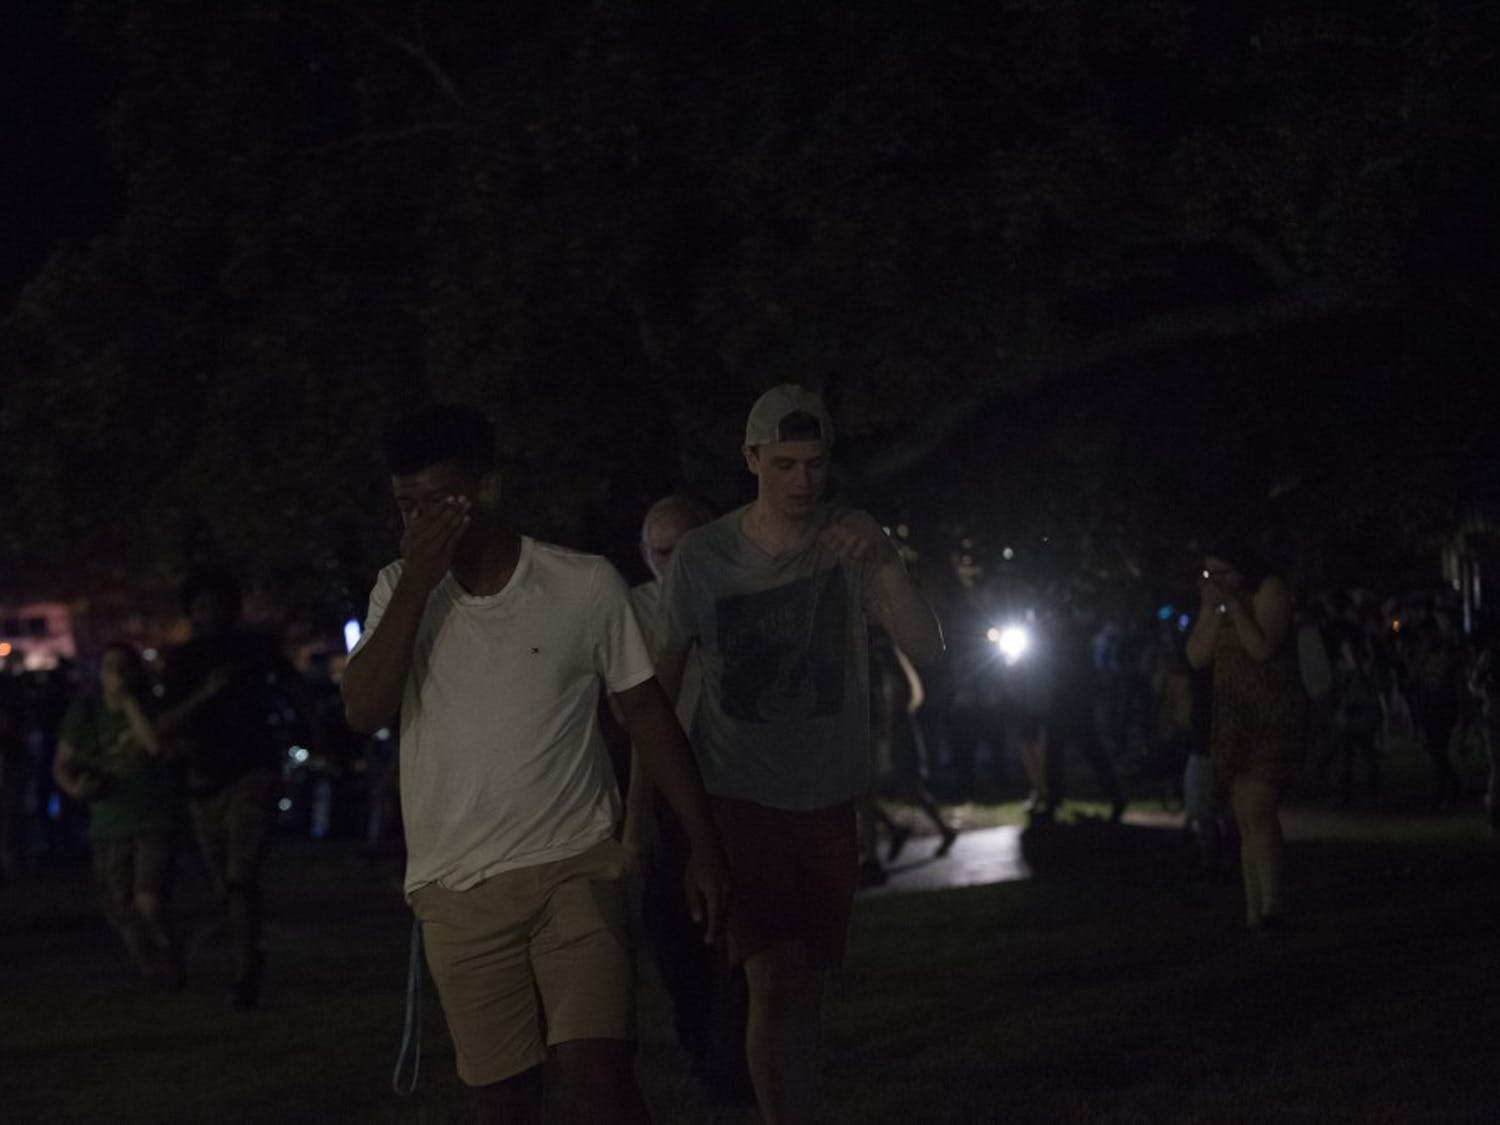 On Aug. 30, pro-Silent Sam demonstrators brought flowers and waved Confederate flags as part of a twilight service to commemorate the toppled statue. Directly beside this, those against the fallen monument held a dance party to celebrate. As twilight service goers left UNC's campus, police used a pepper fogger to disperse the crowd.